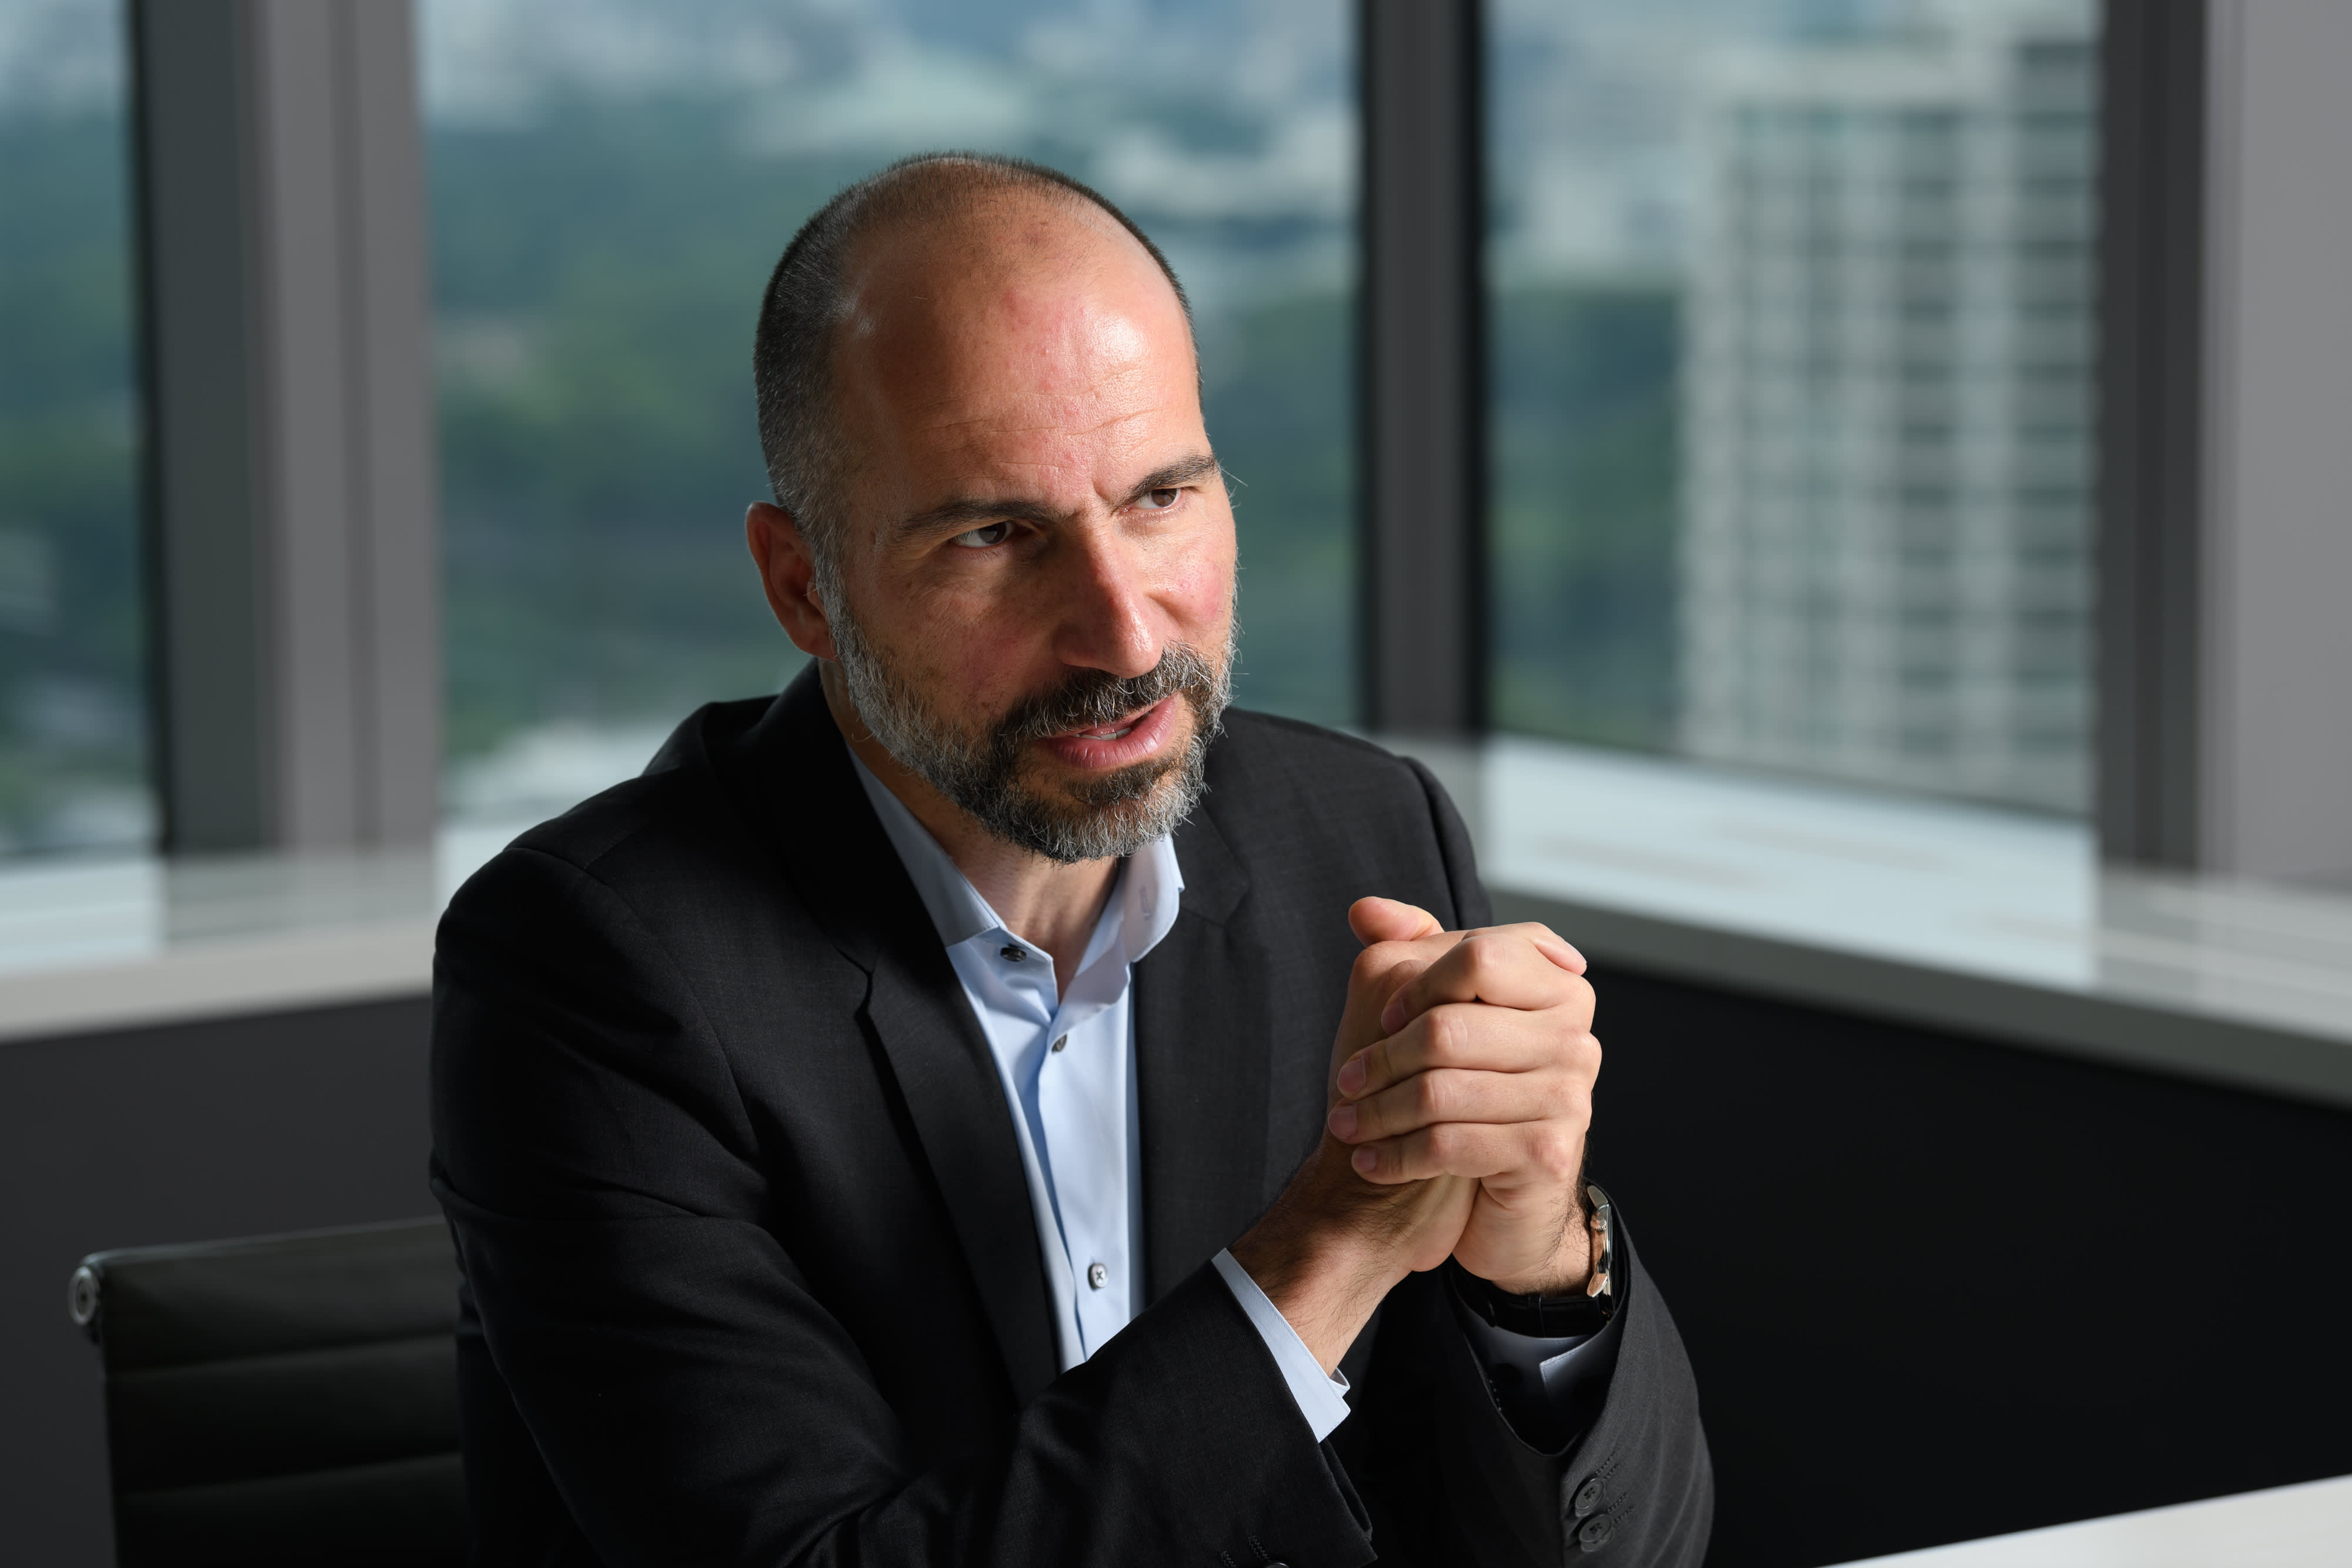 Uber CEO Dara Khosrowshahi speaks with CNBC's David Faber and Jim Cramer: Full transcript